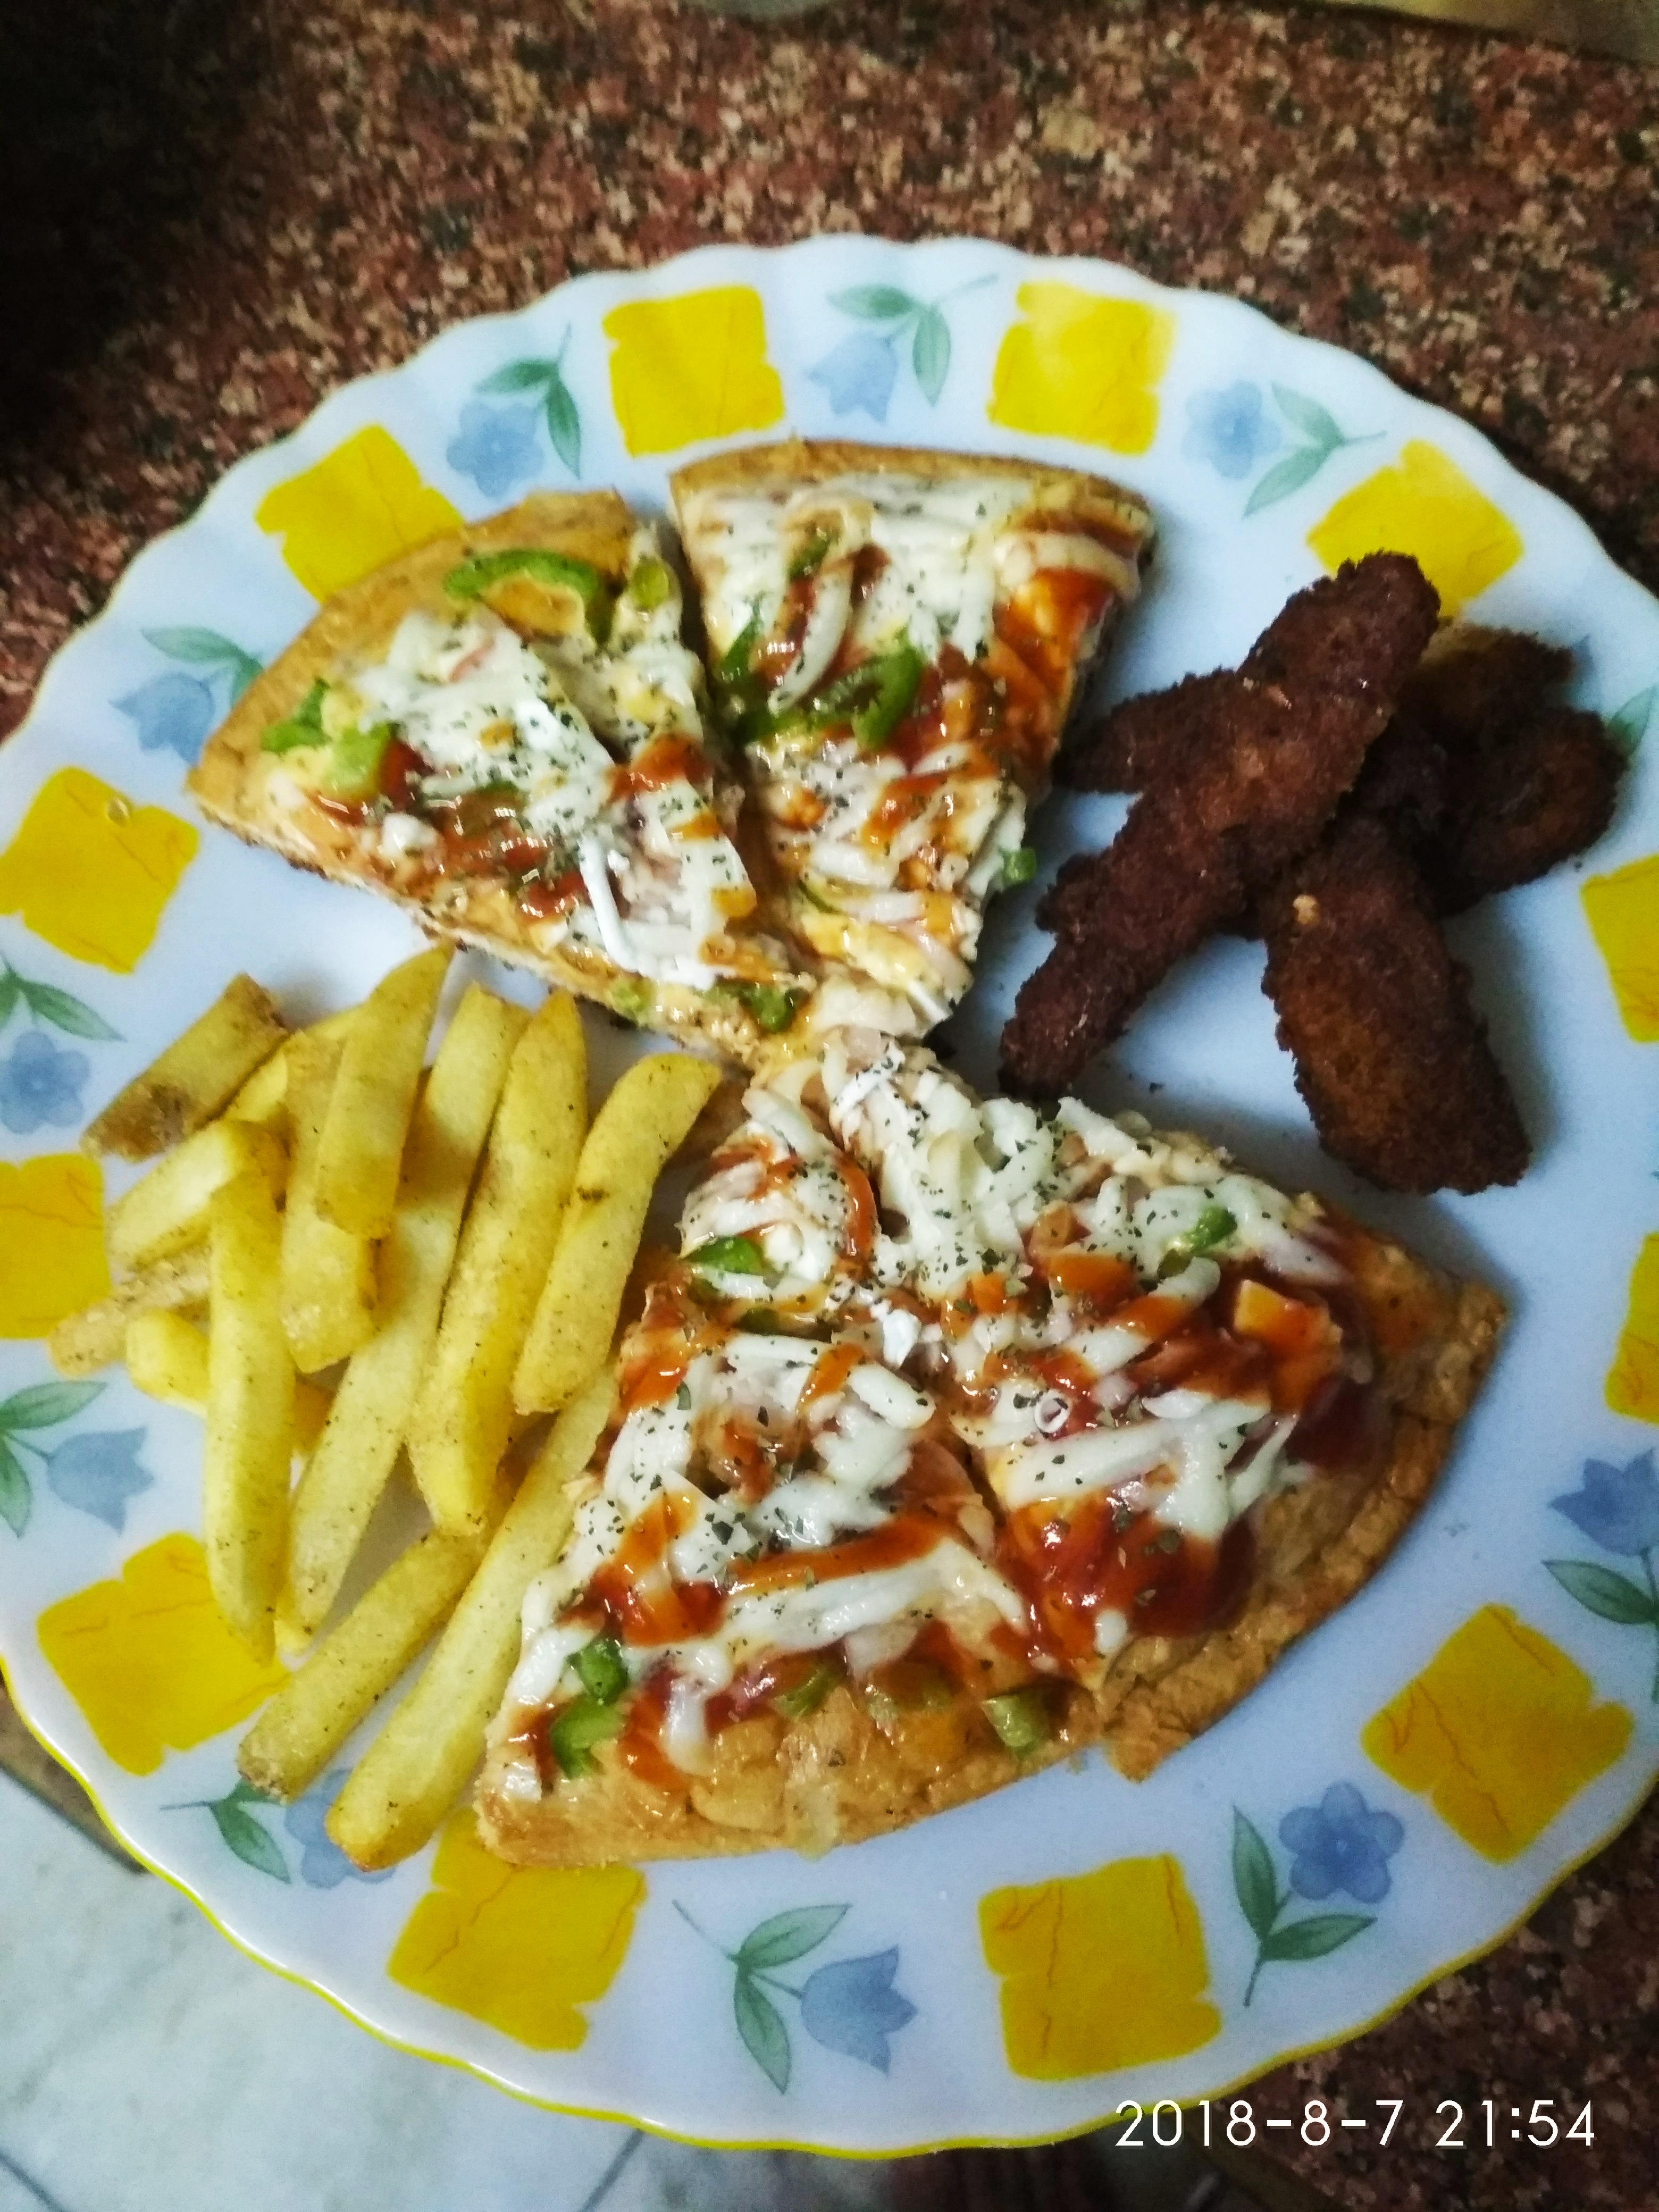 Cheesy pizza with some fish and finger feies